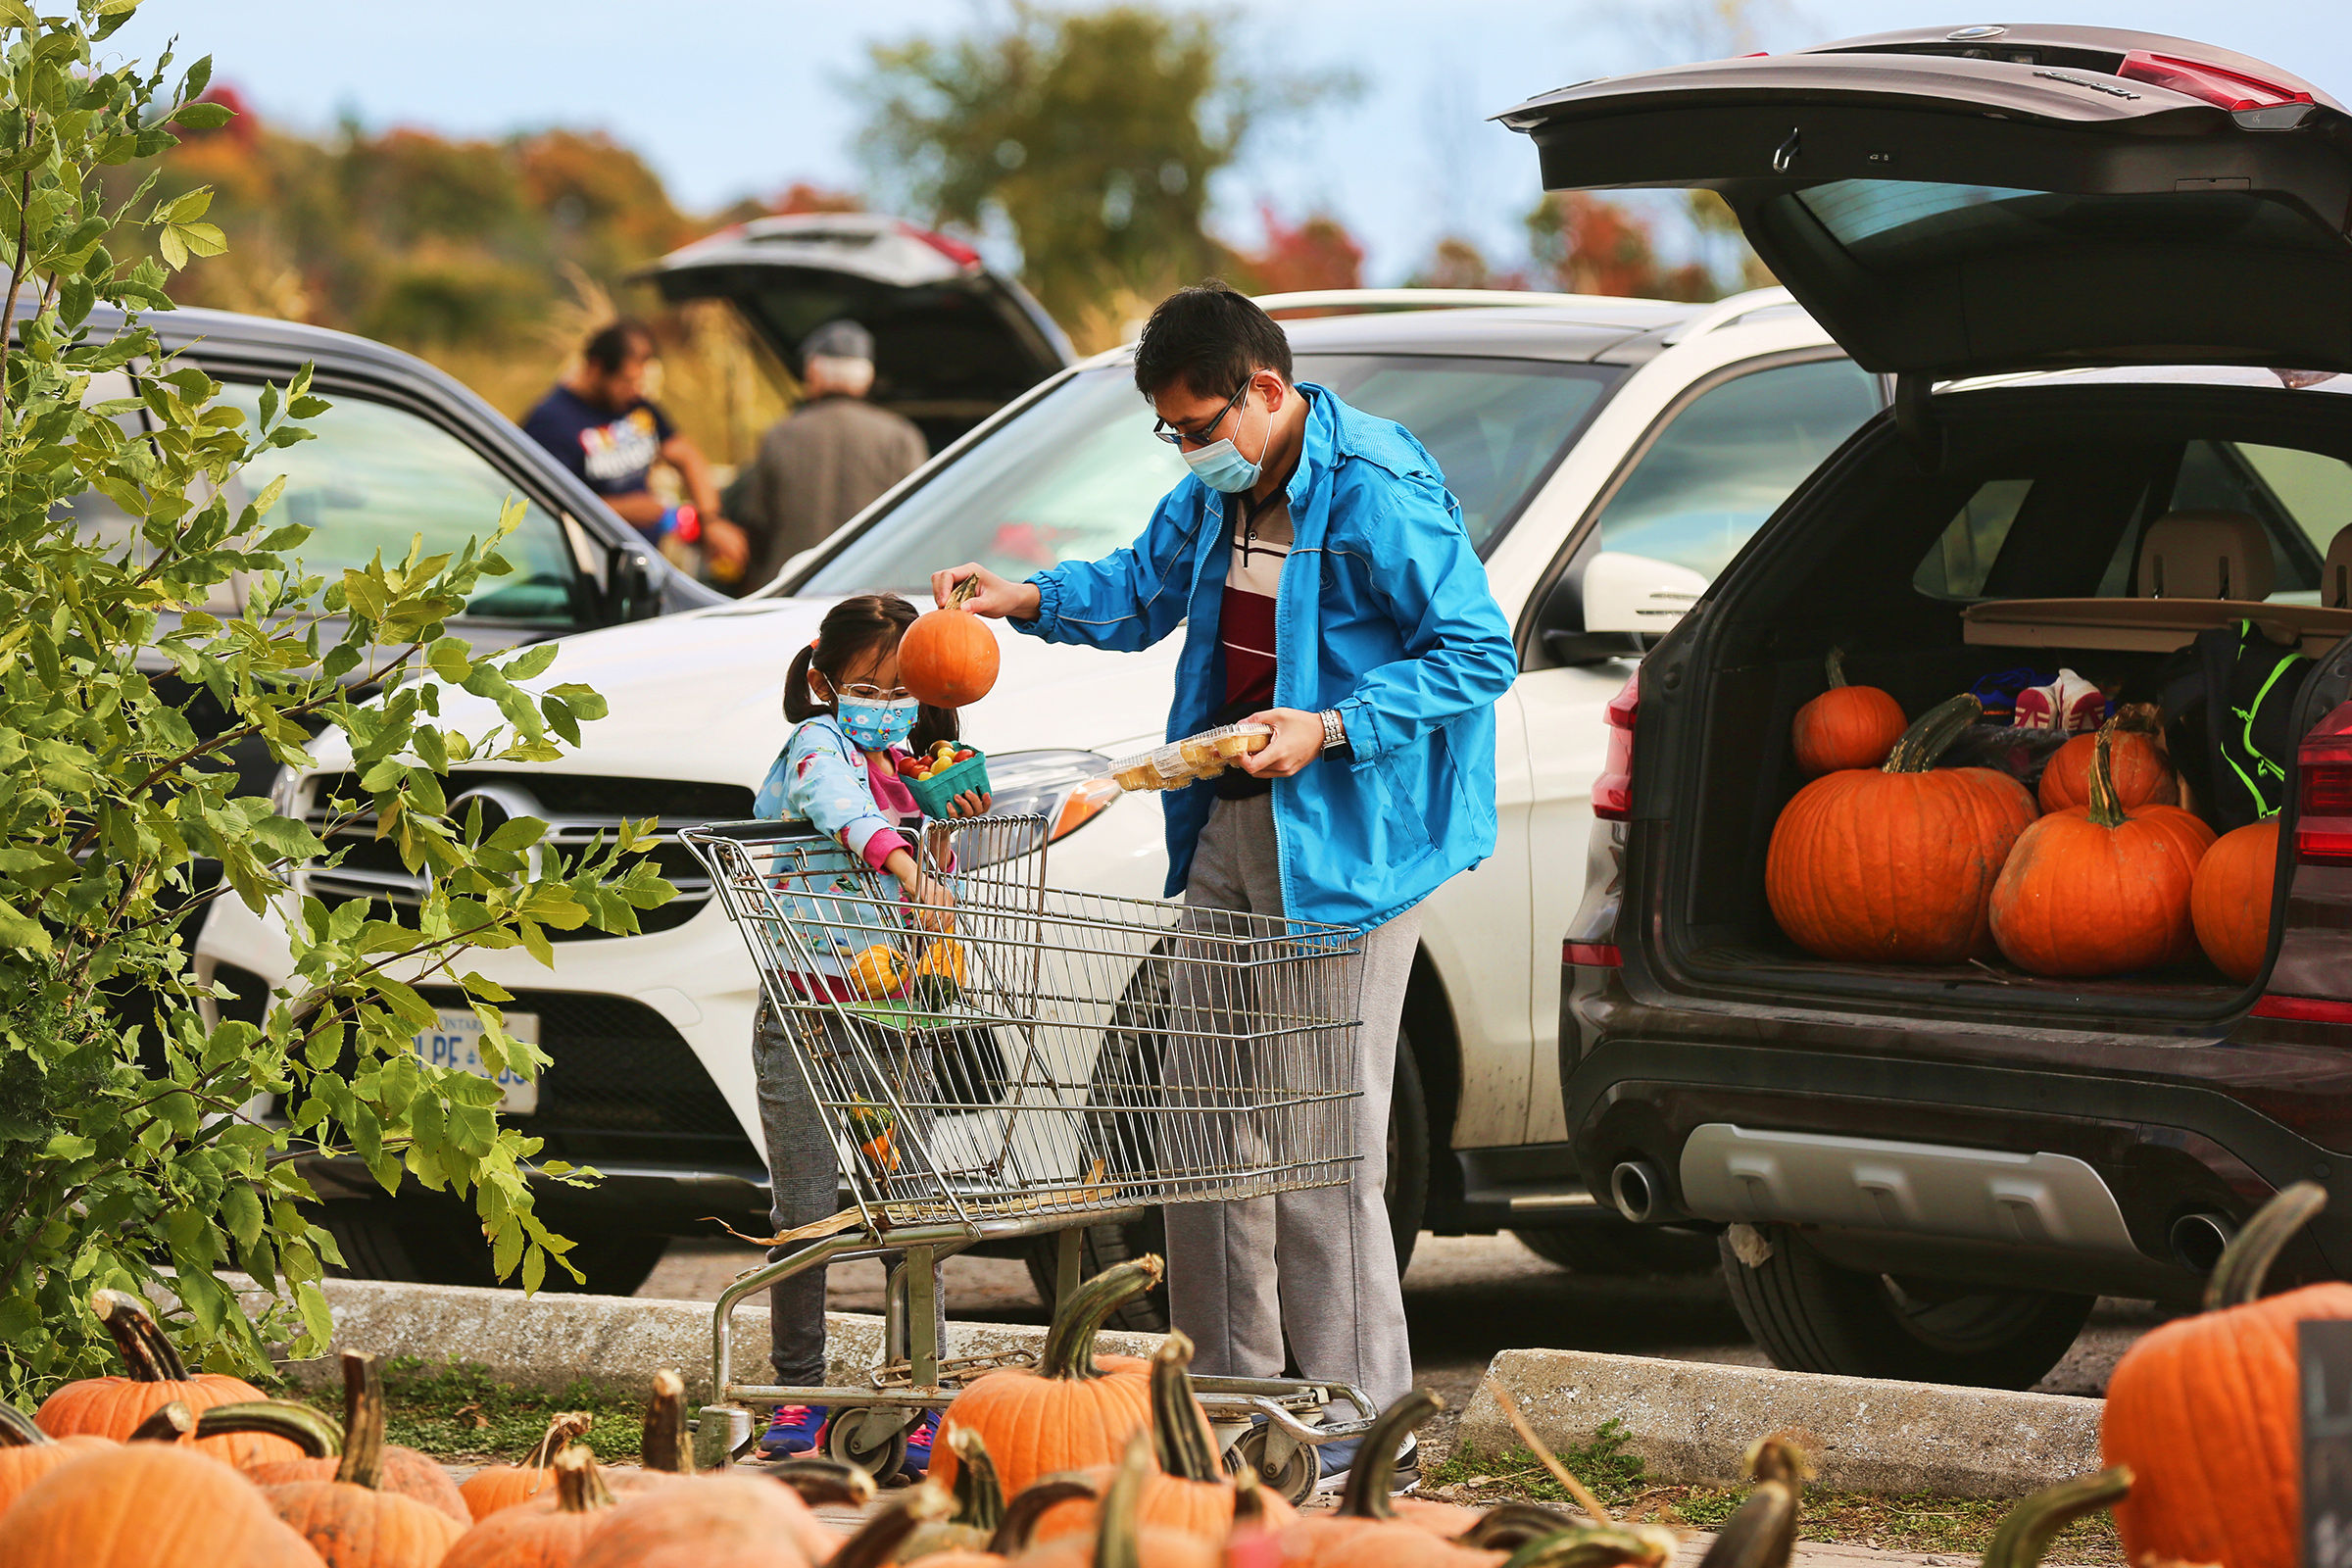 People wearing face masks to protect them from the COVID-19 select pumpkins for Halloween at a farm in Markham, Ontario, on Oct. 03